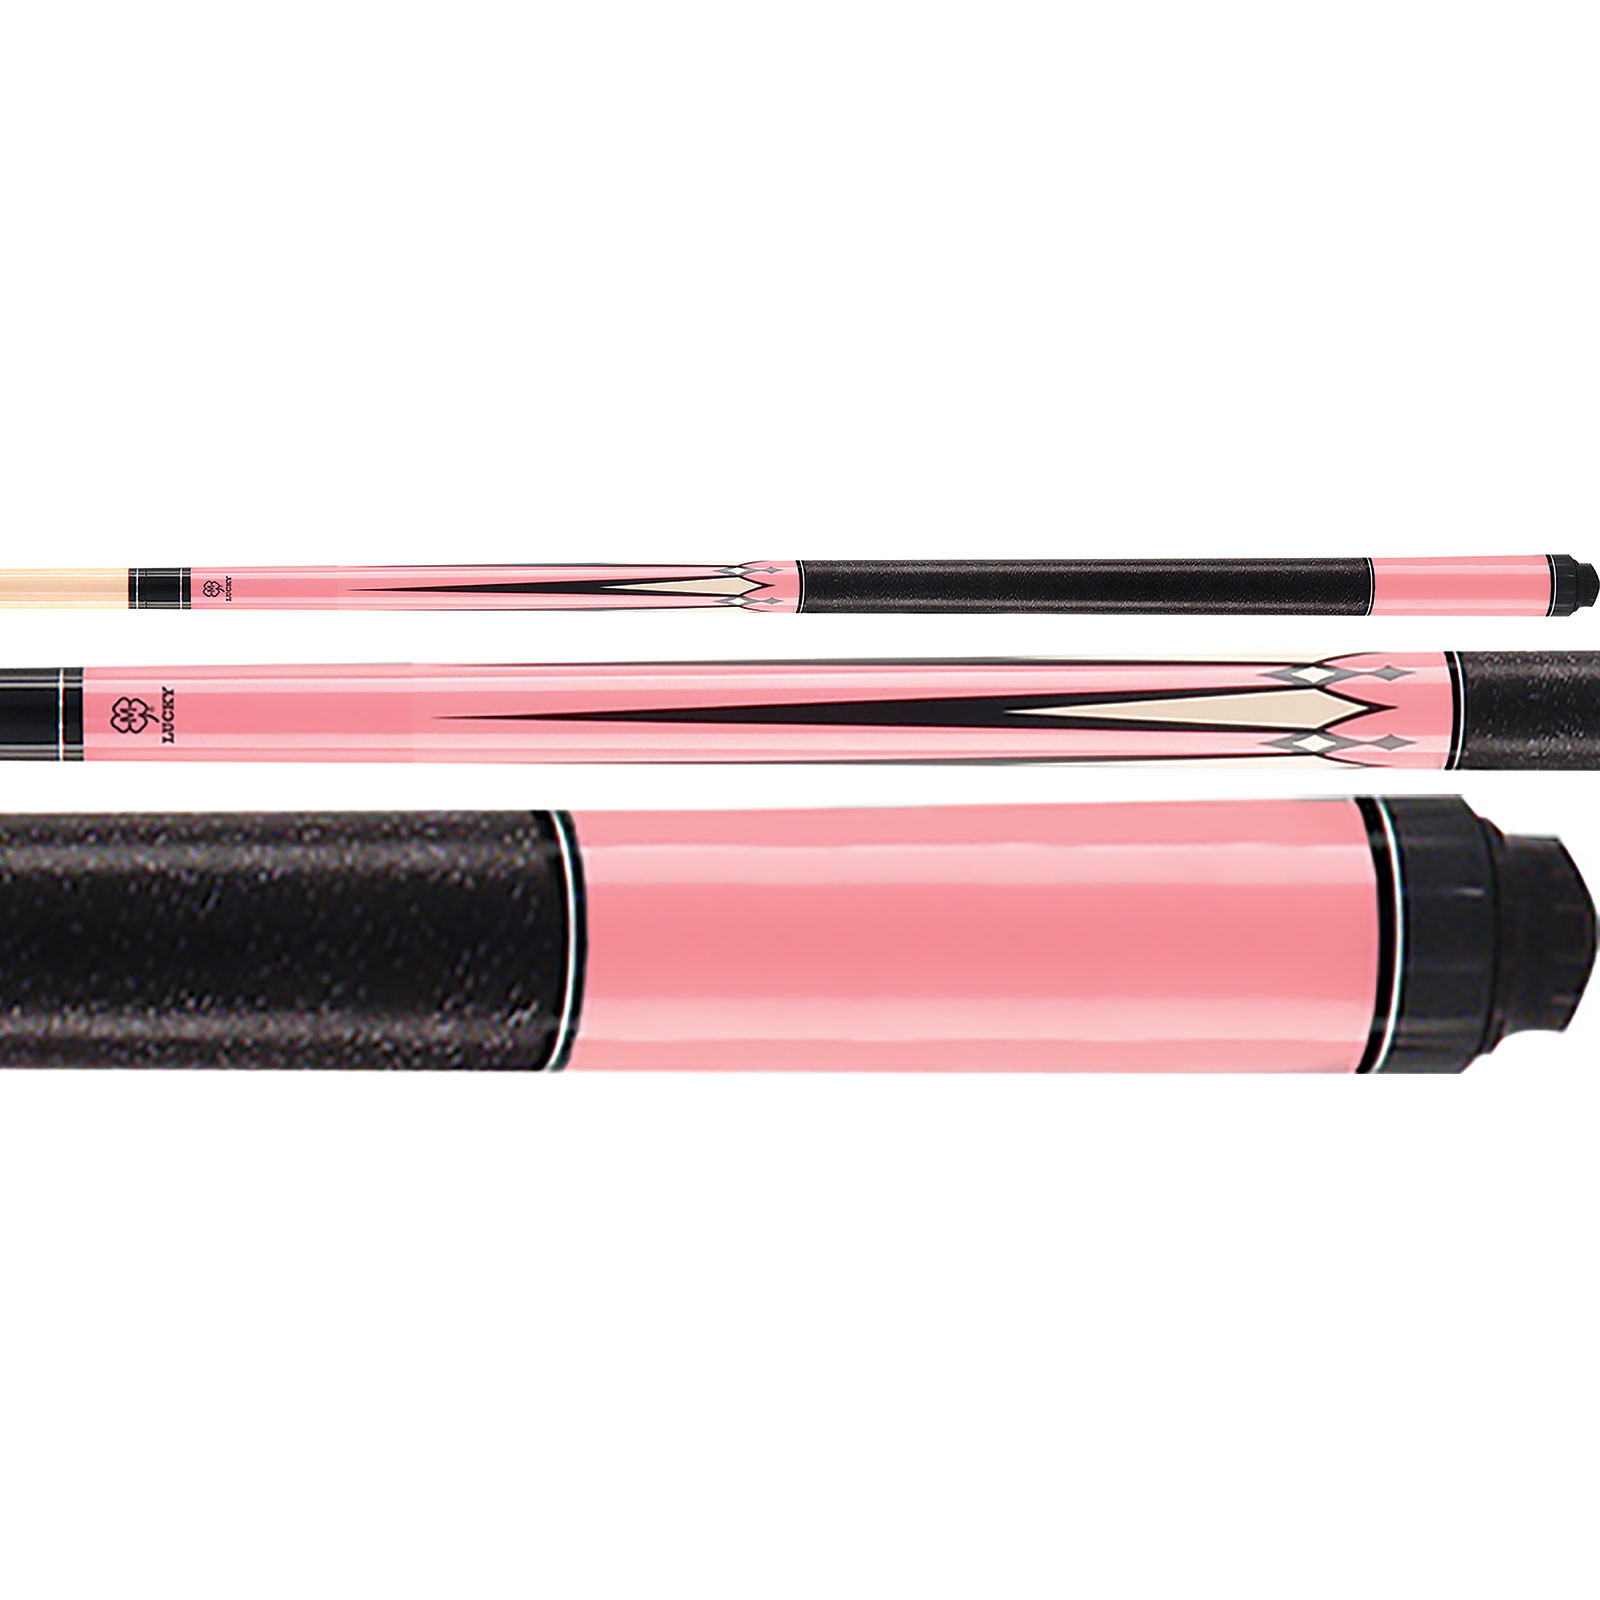 McDermott Lucky Pool Cue, L17, Pink